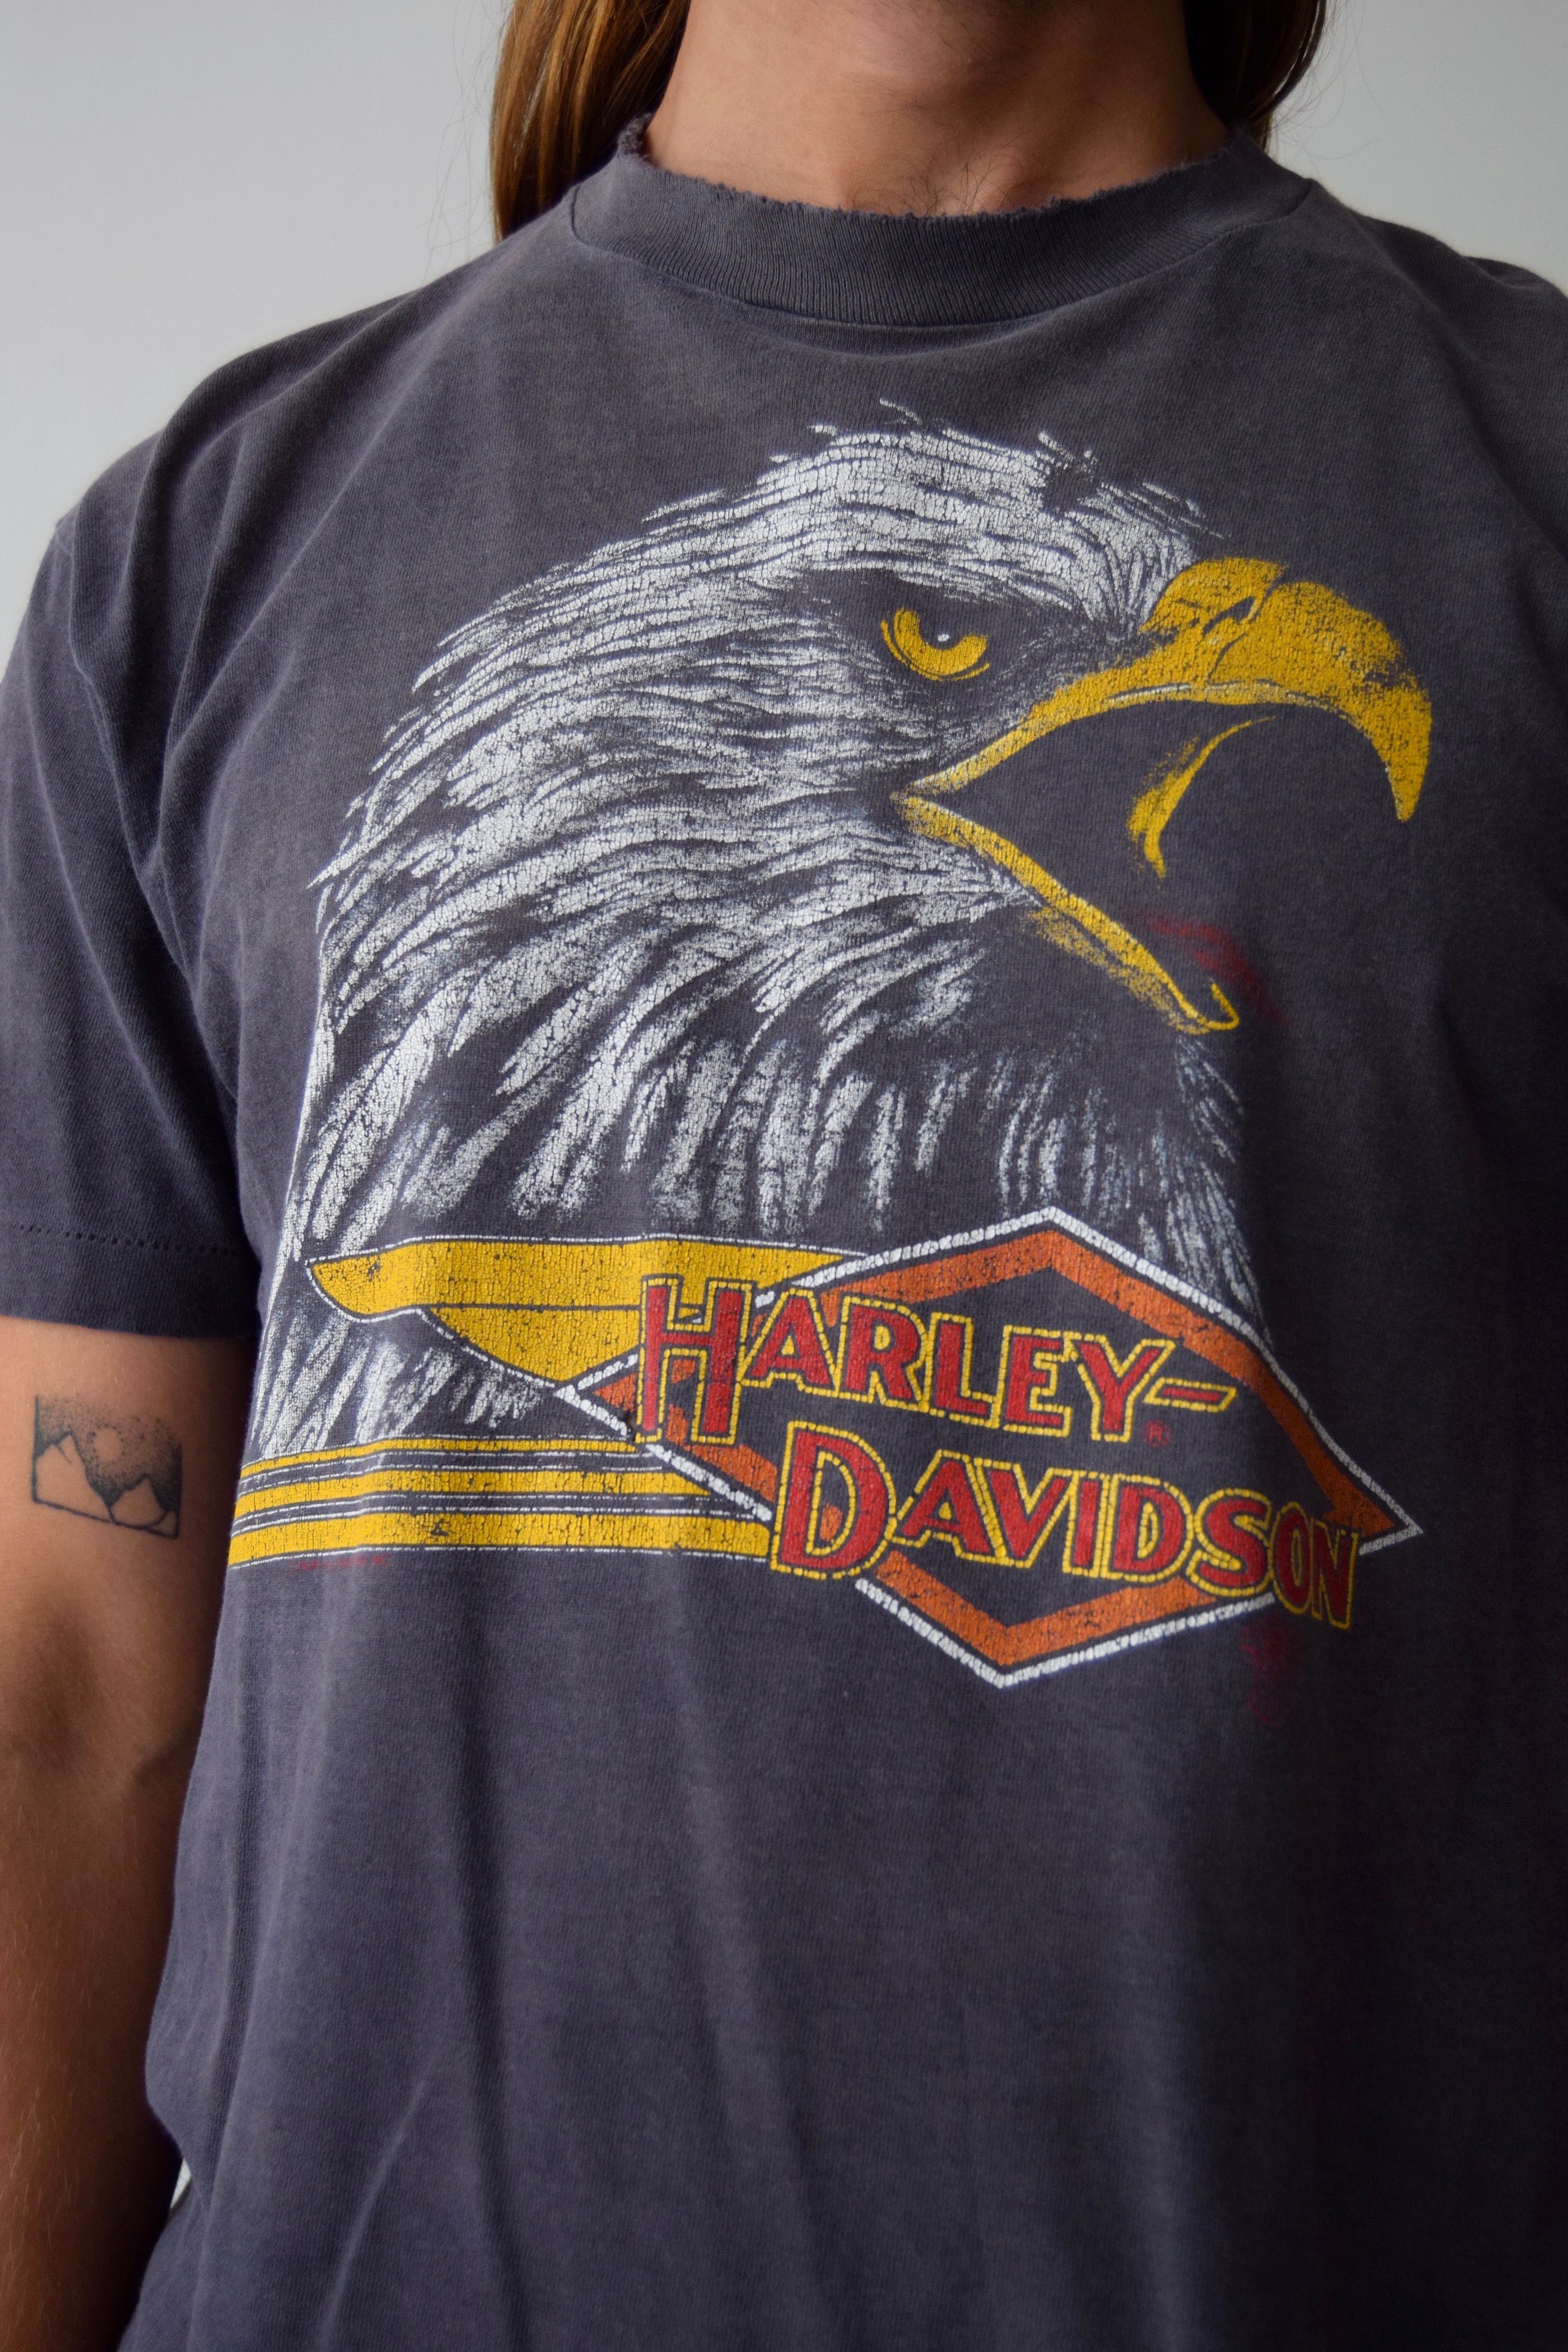 Vintage 1986 Harley Davidson Screeching Eagle T-Shirt FREE SHIPPING TO THE U.S.